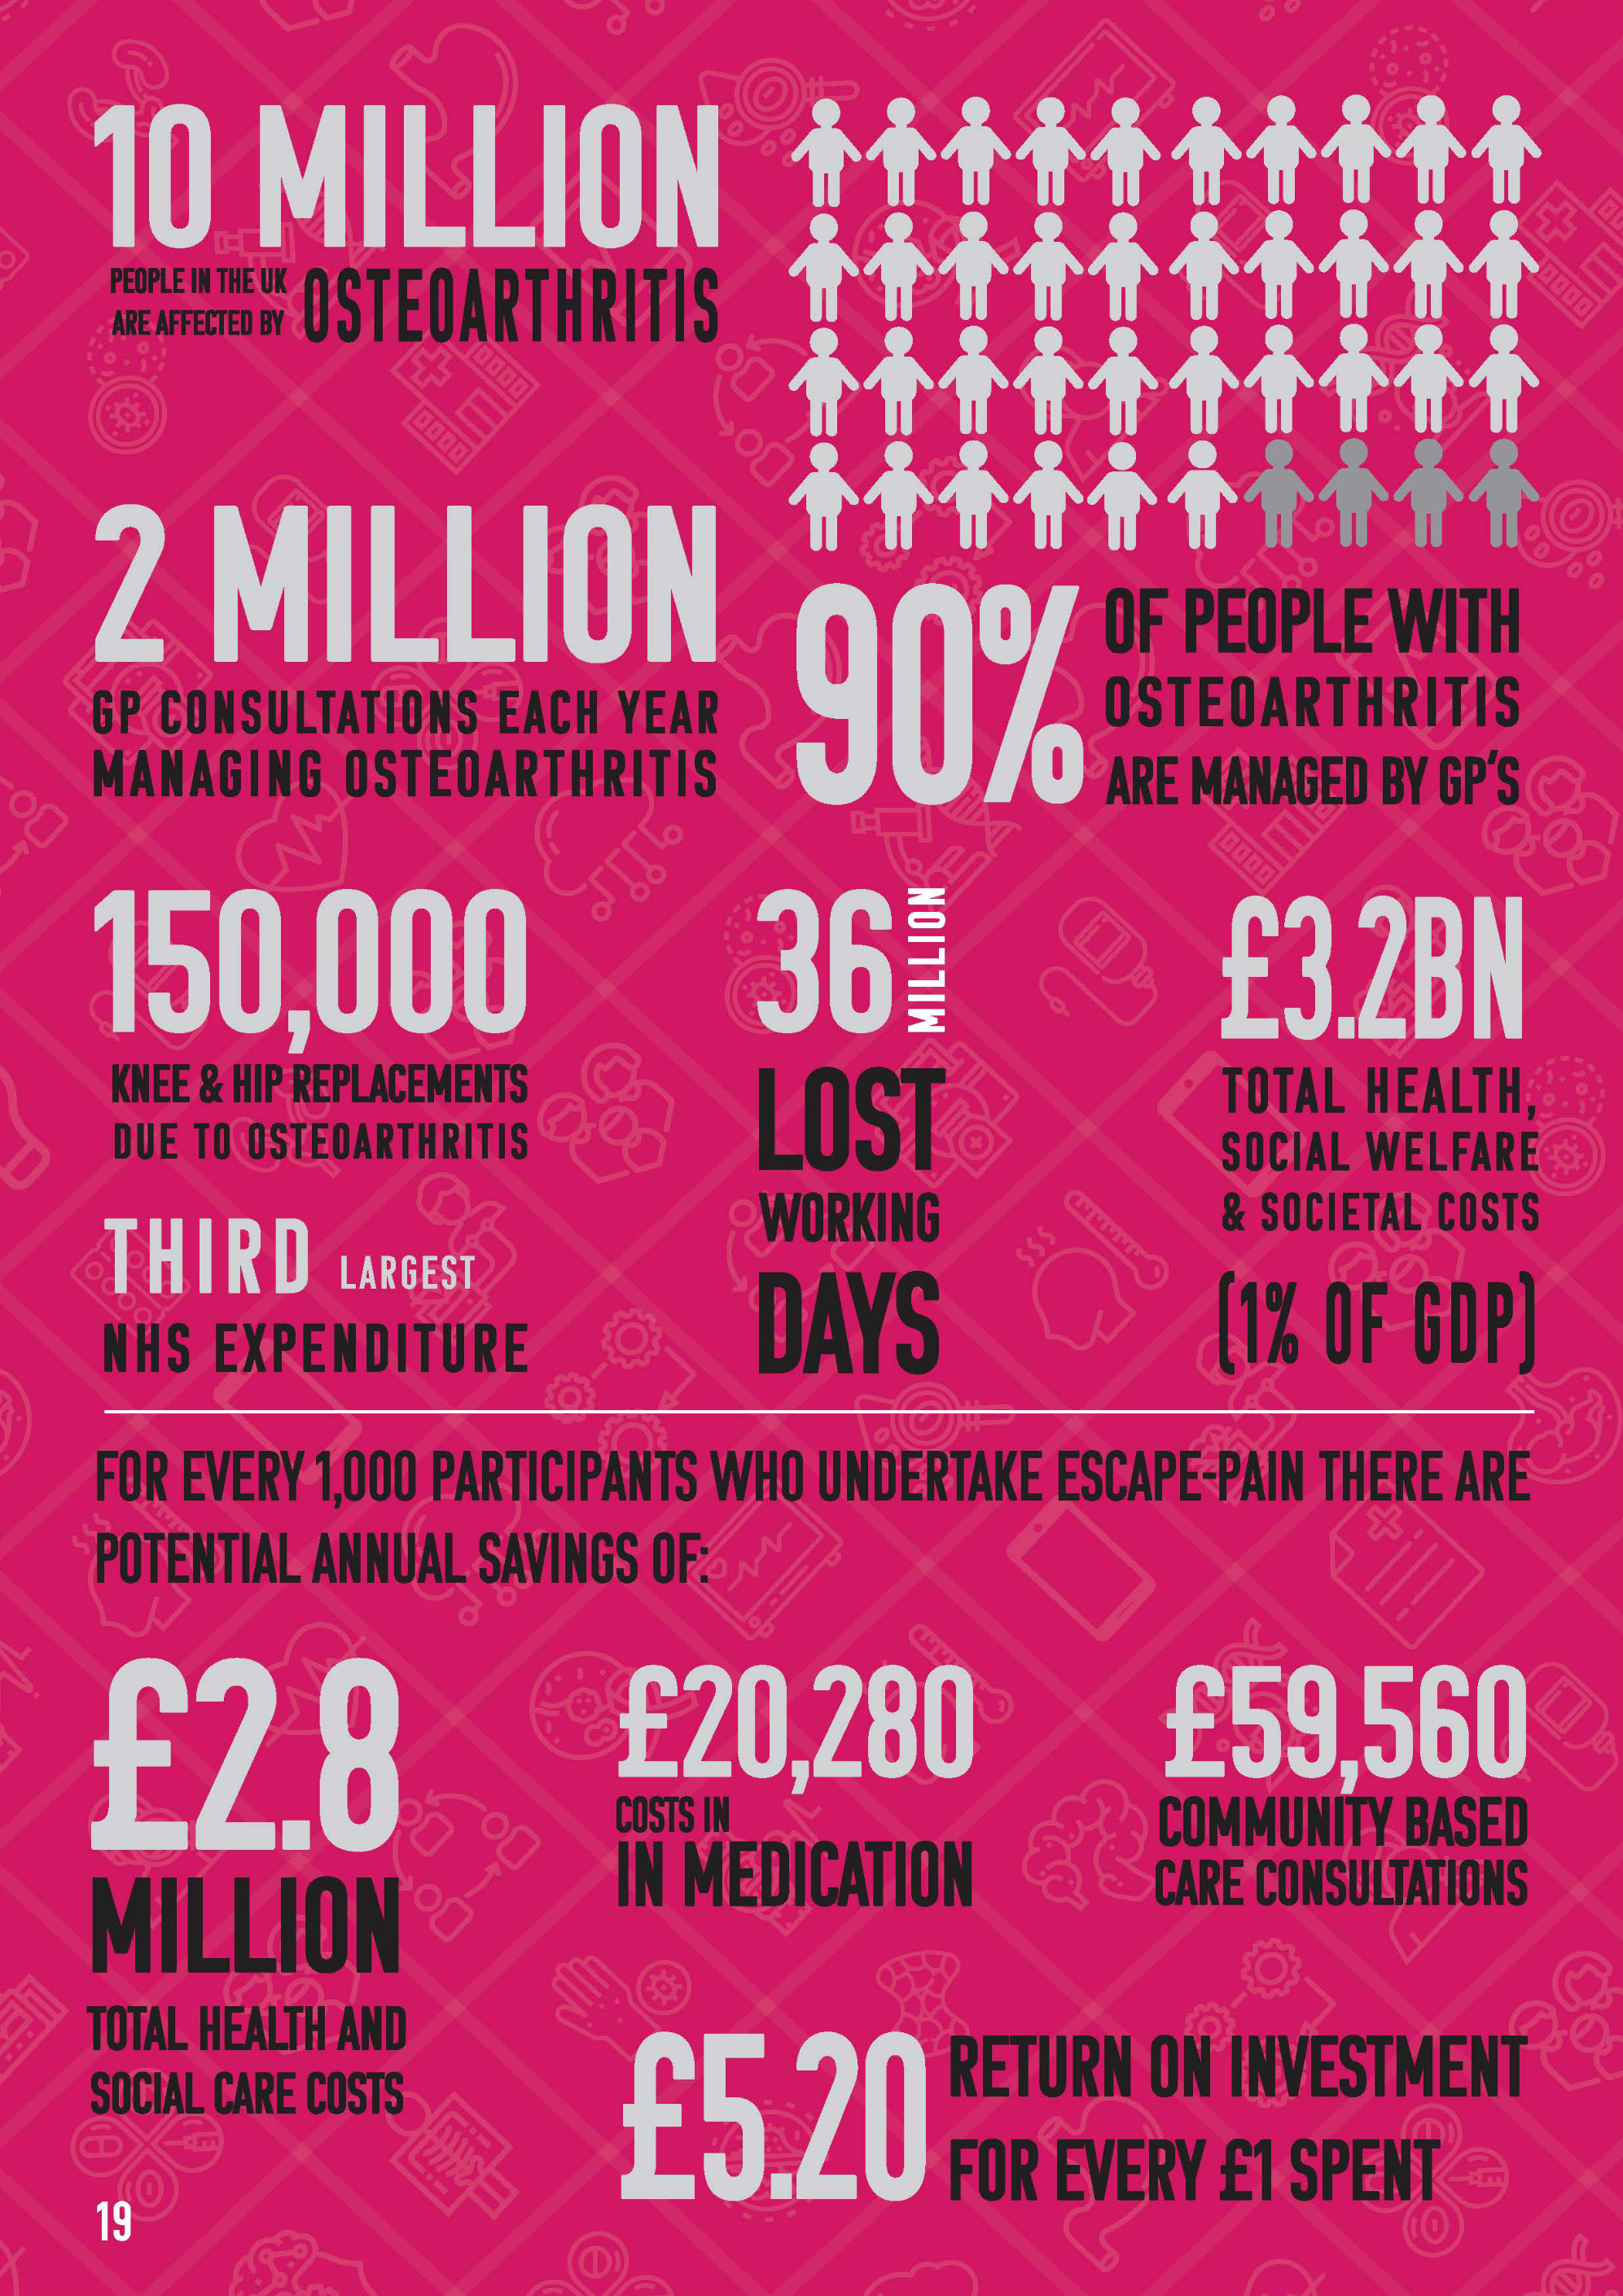 Escape Pain Infographic - 10million people in the UK are affected by osteoarthritis, 2 million GP consultations each year managing osteoarthritis 90% of people with osteoarthritis are managed by GPs. 150,000 knee and hip replacements due to osteoarthritis, 36million lost working days, £3.2 billion total health, social welfare and societal costs